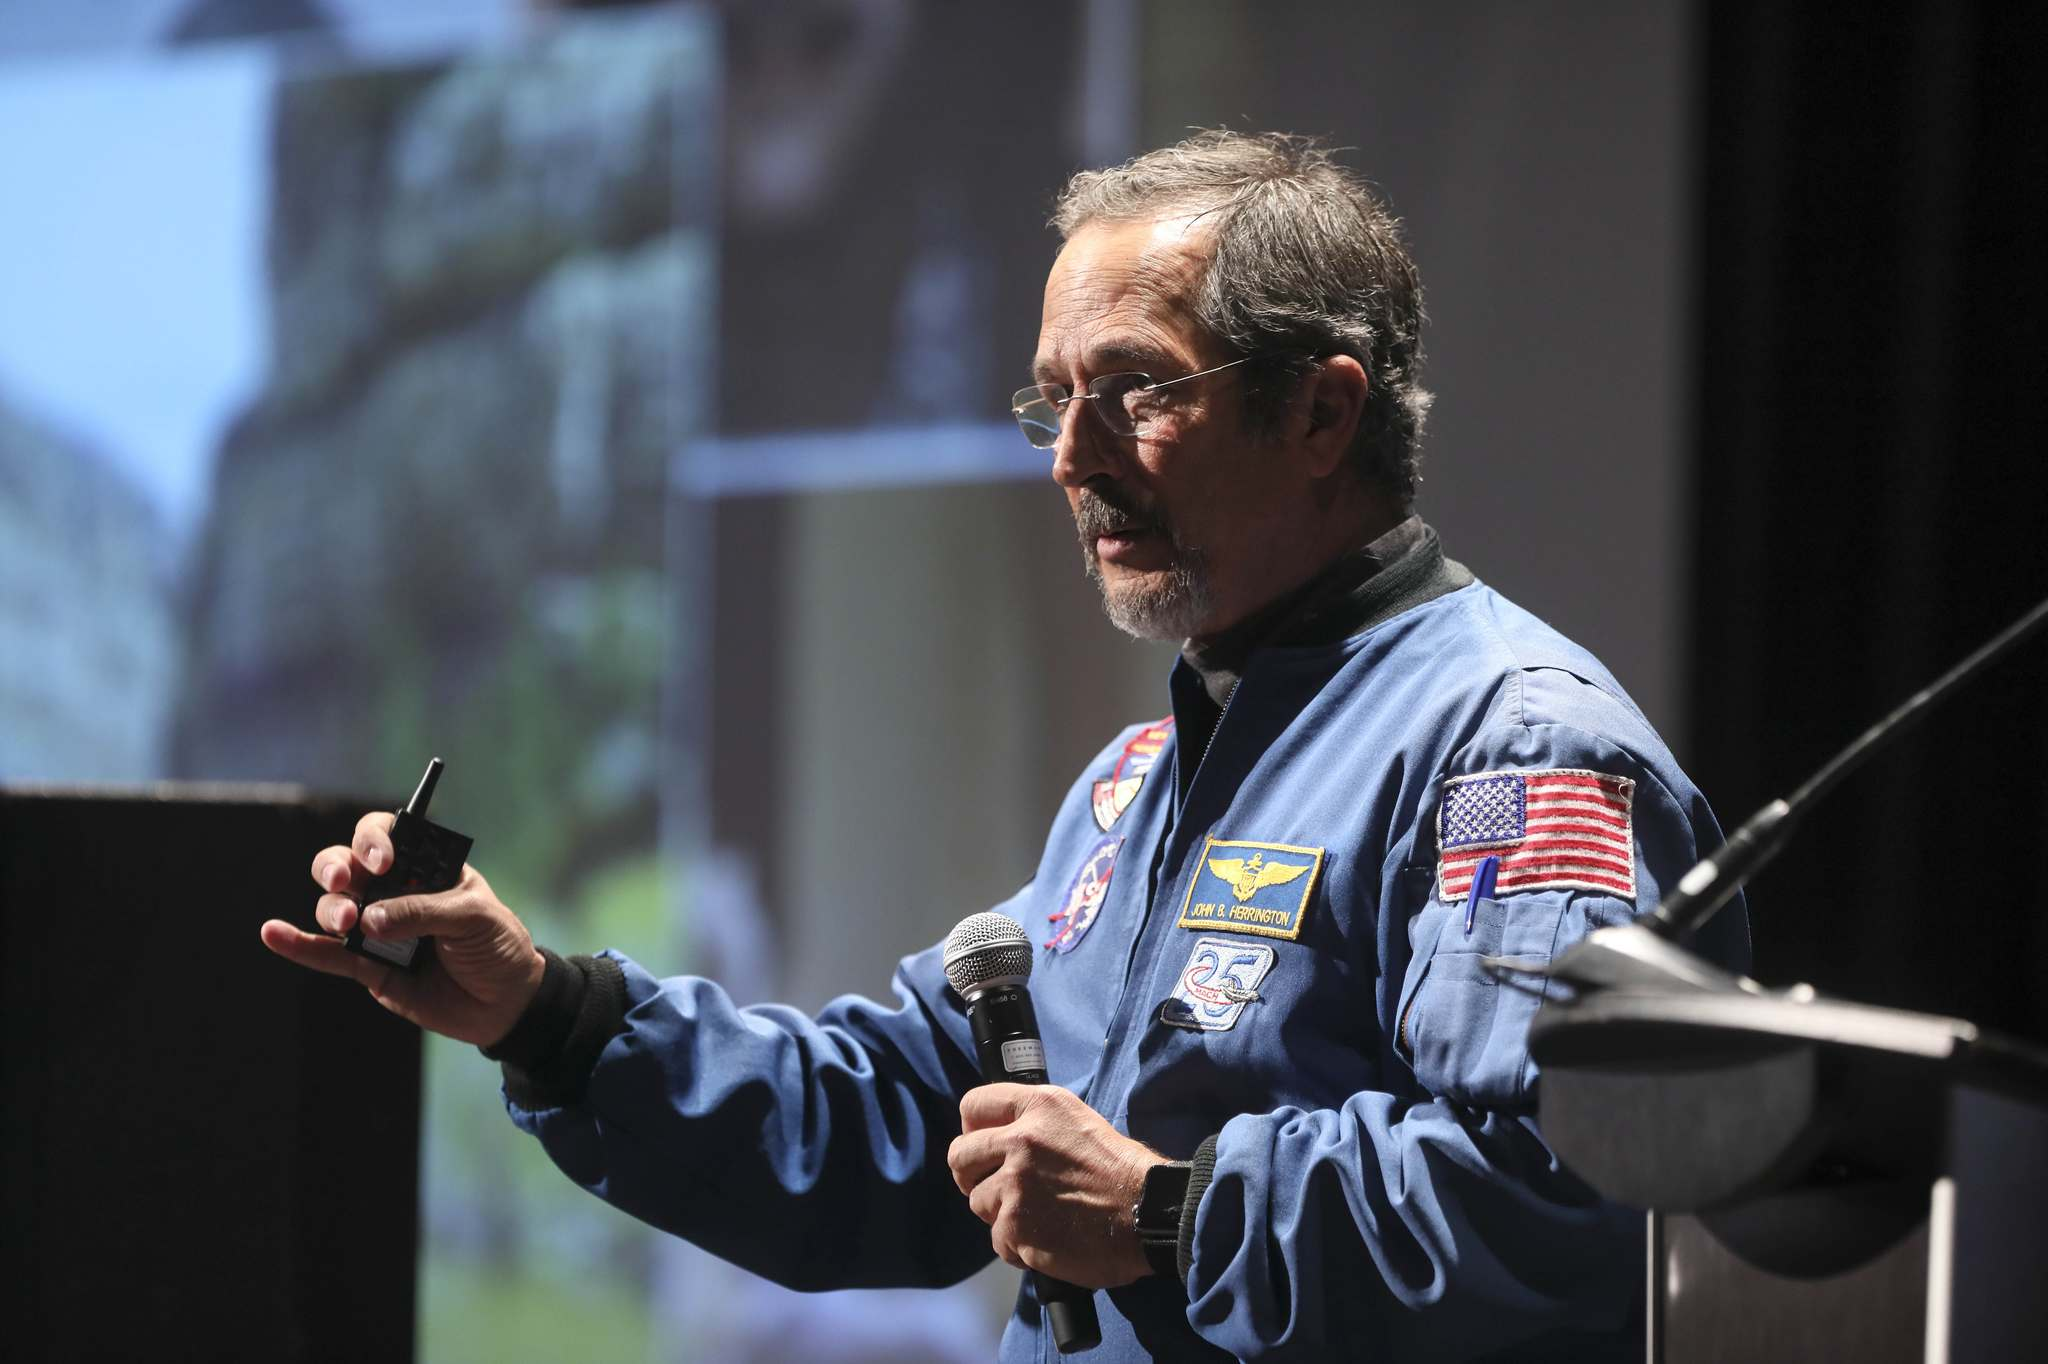 <p>Indigenous astronaut, Commander Dr. John Herrington, a member of the Chickasaw Nation, spent 13 days, 18 hours and 47 minutes in space in 2002, taking his tribe's flag to the International Space Station.</p>